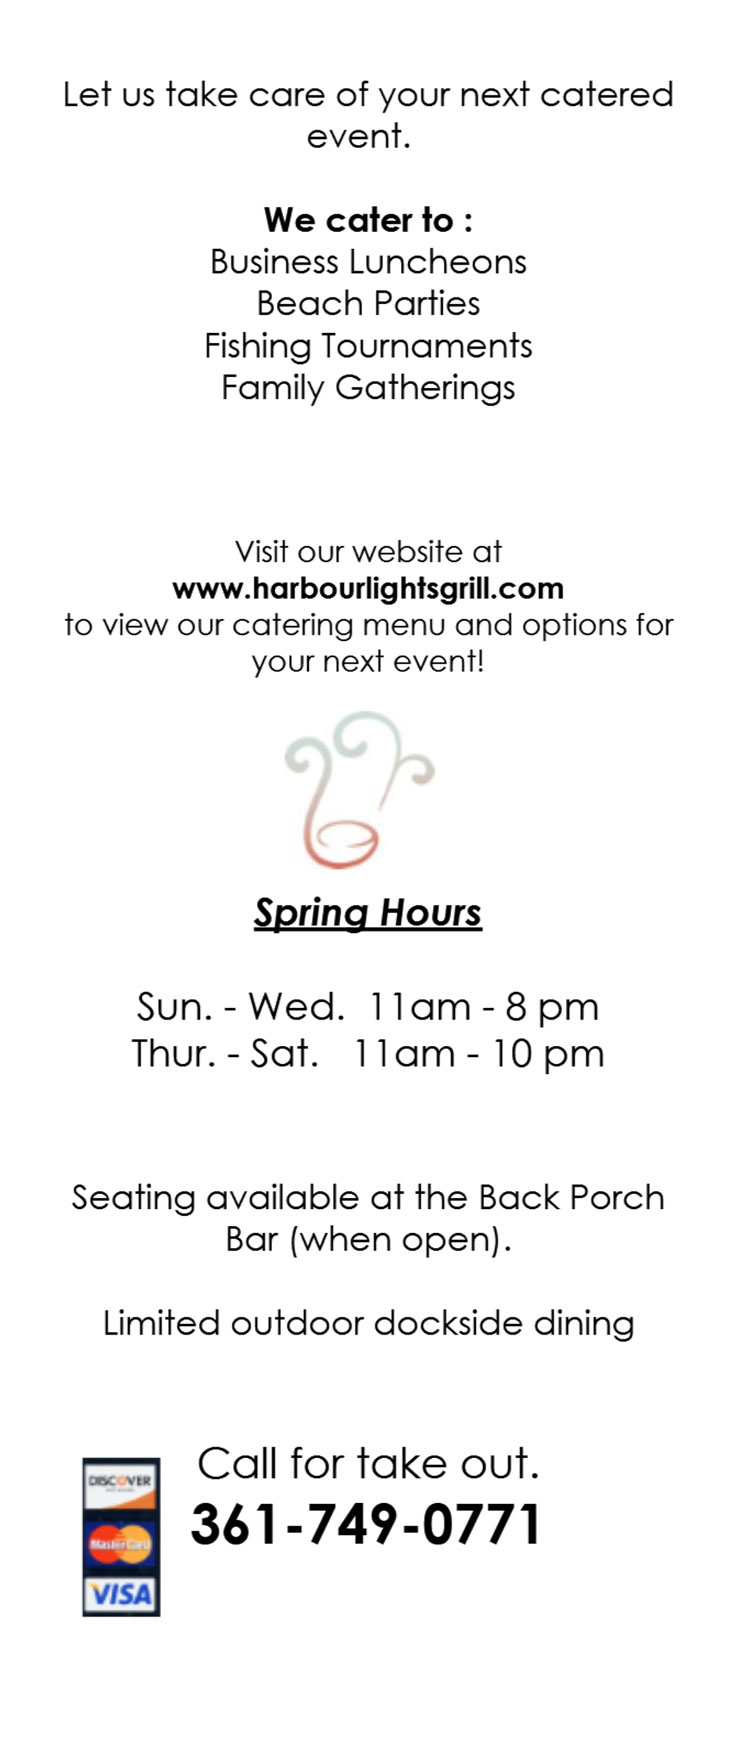 Harbour Lights Catering & Grill Restaurant Menu at Woody's & The Back Porch in Port Aransas, Texas.